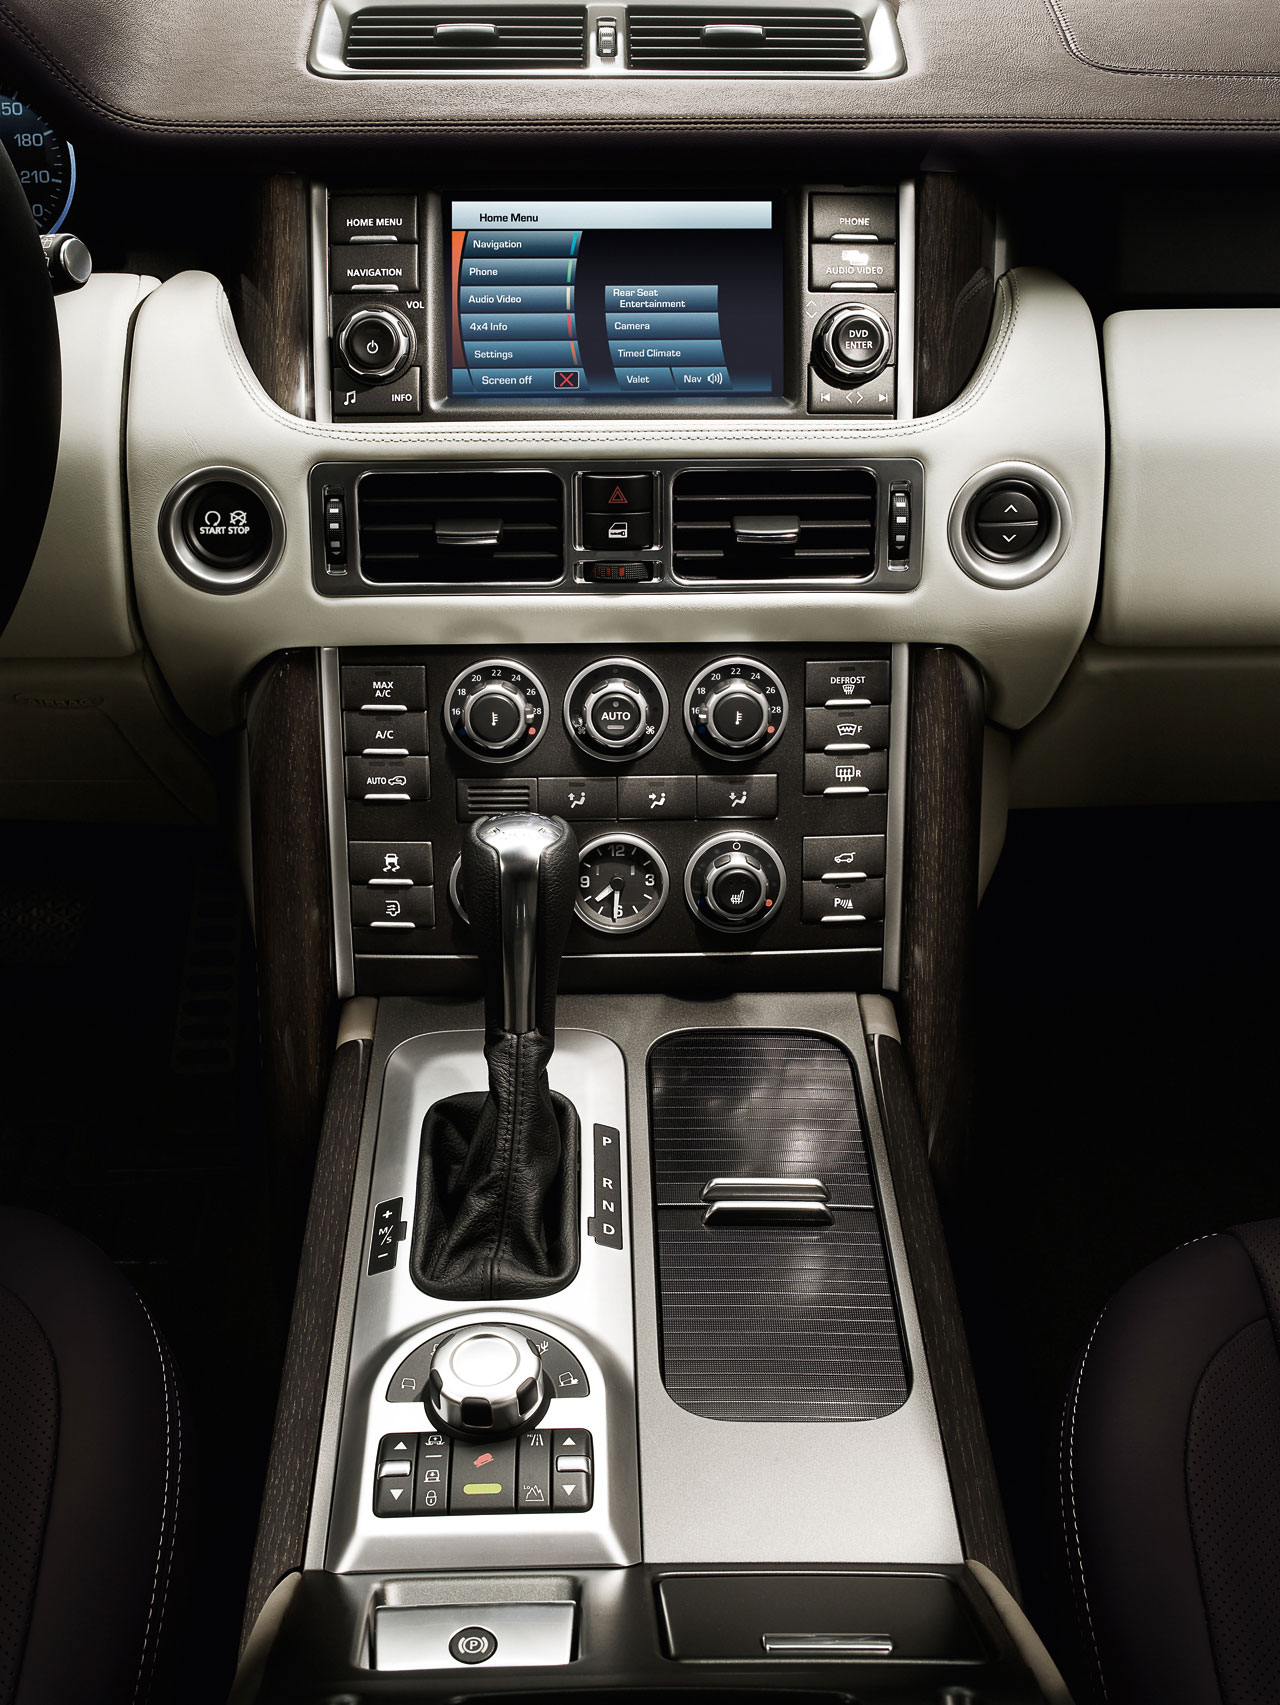 ���� 2010 ������� 15-2010-range-rover-press.jpg